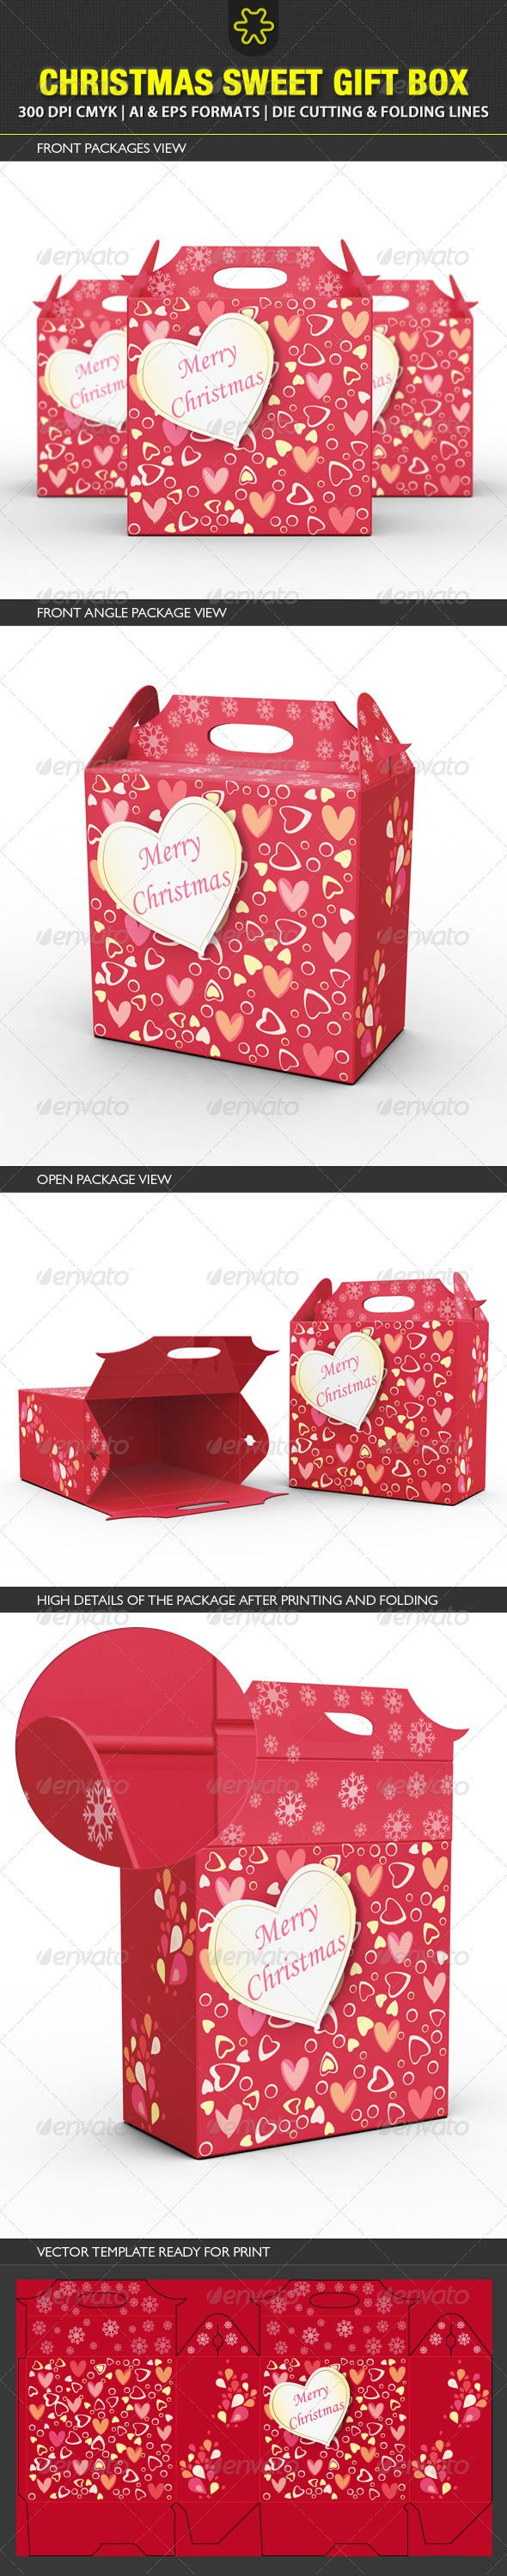 Best images about gift wrapping packaging ideas on